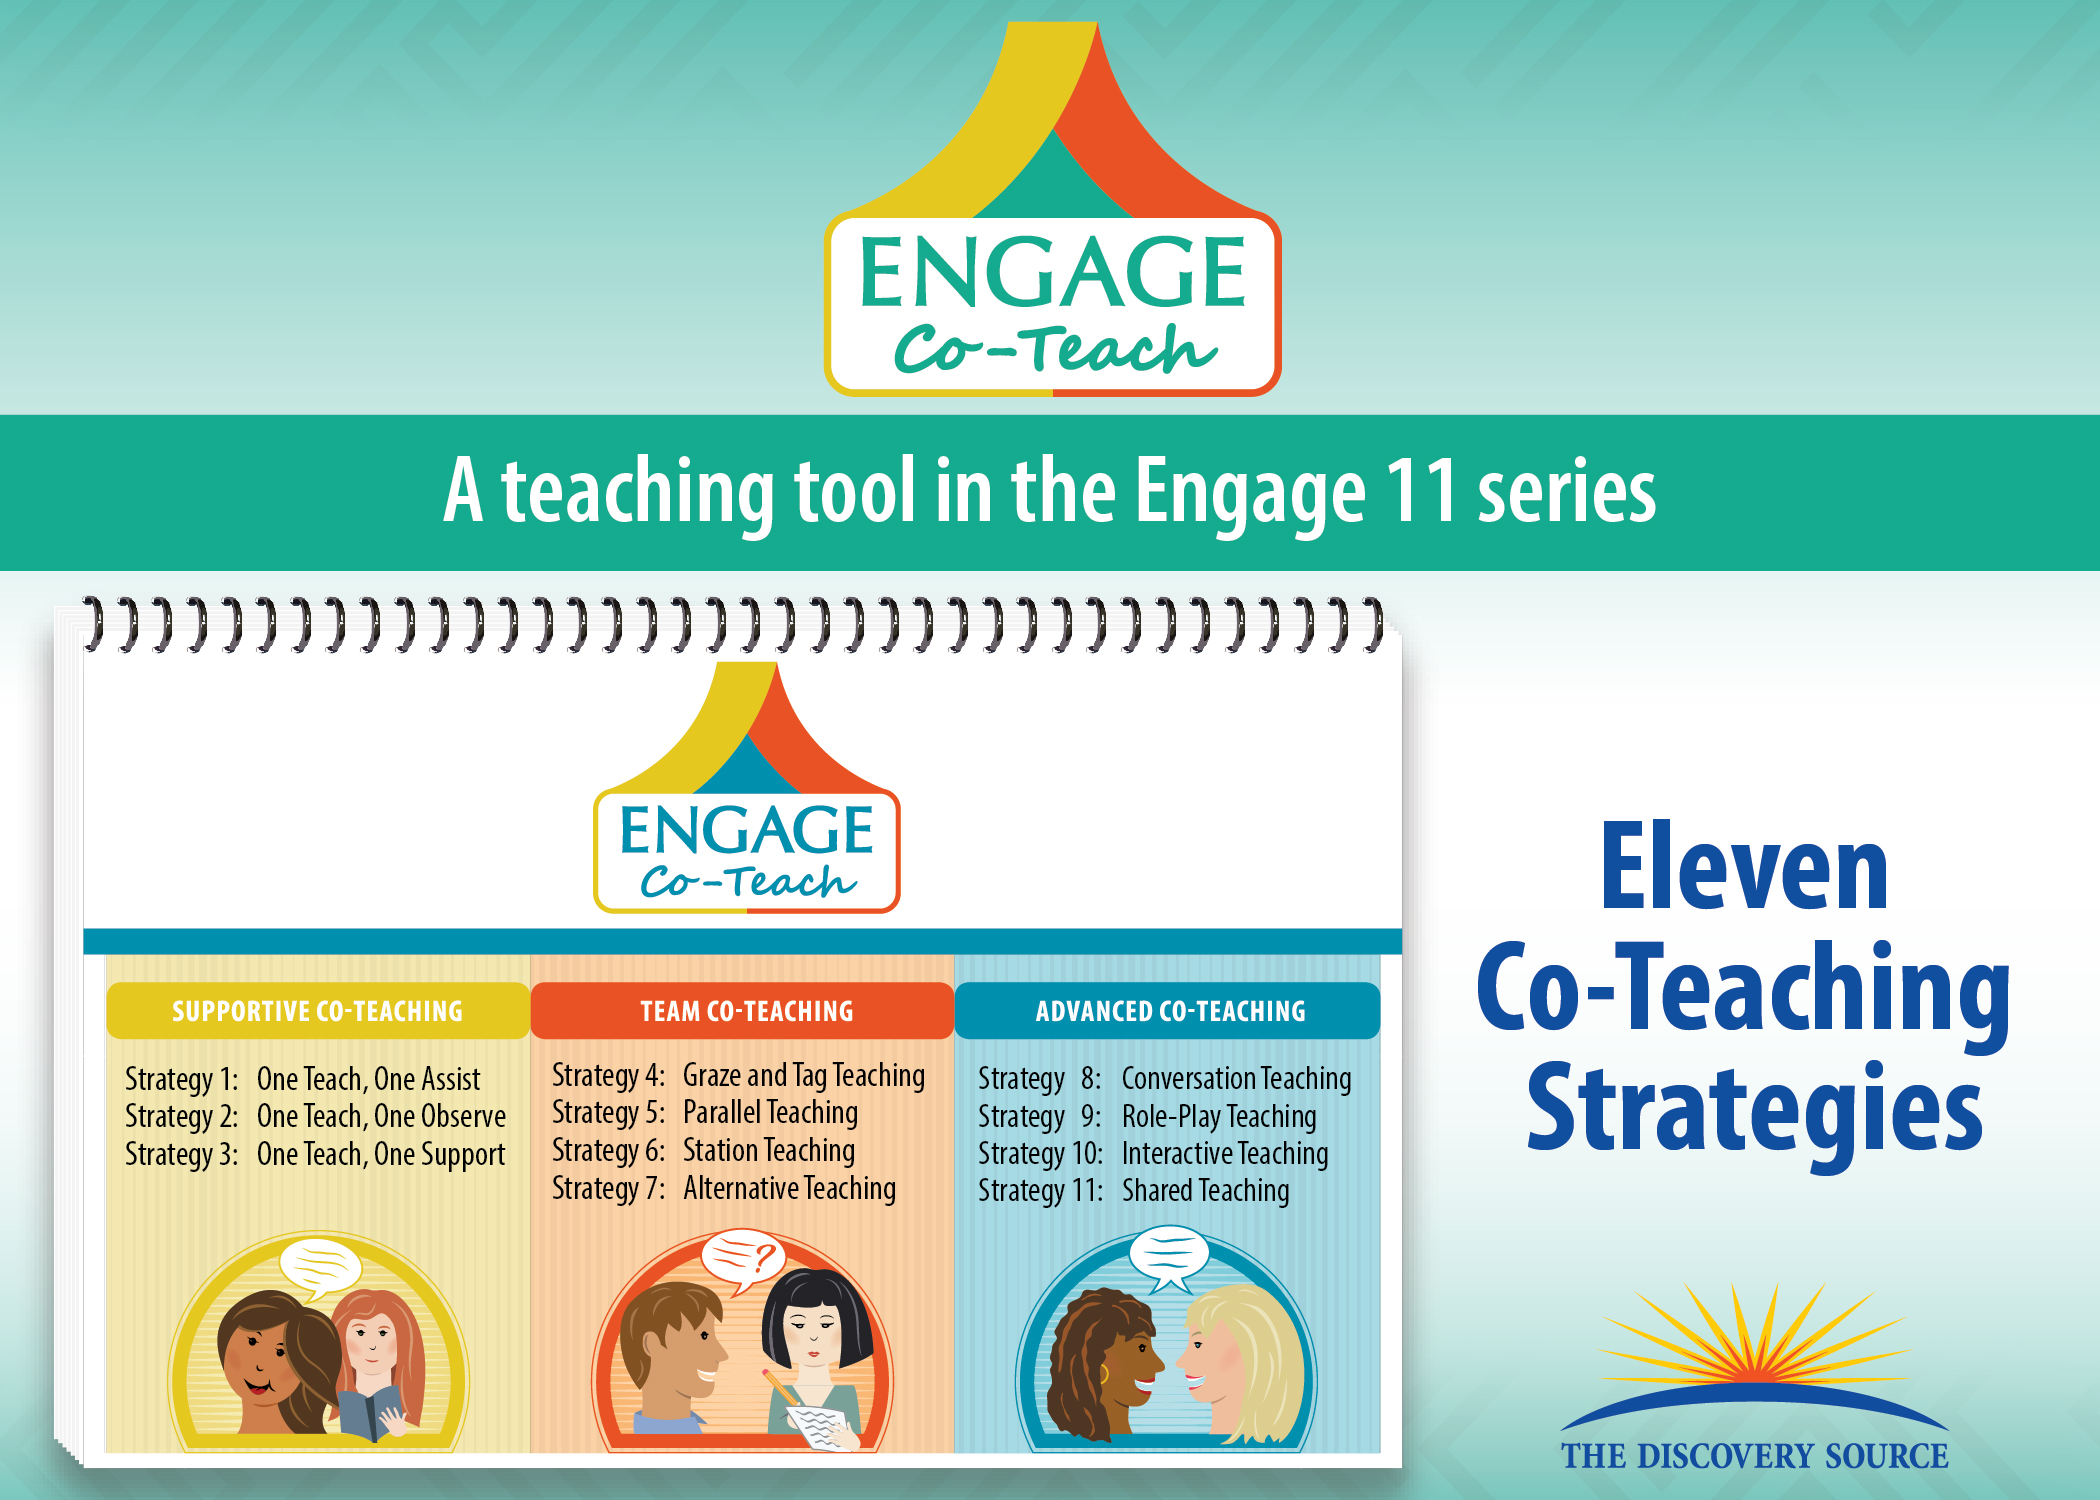 Engage Co-Teach